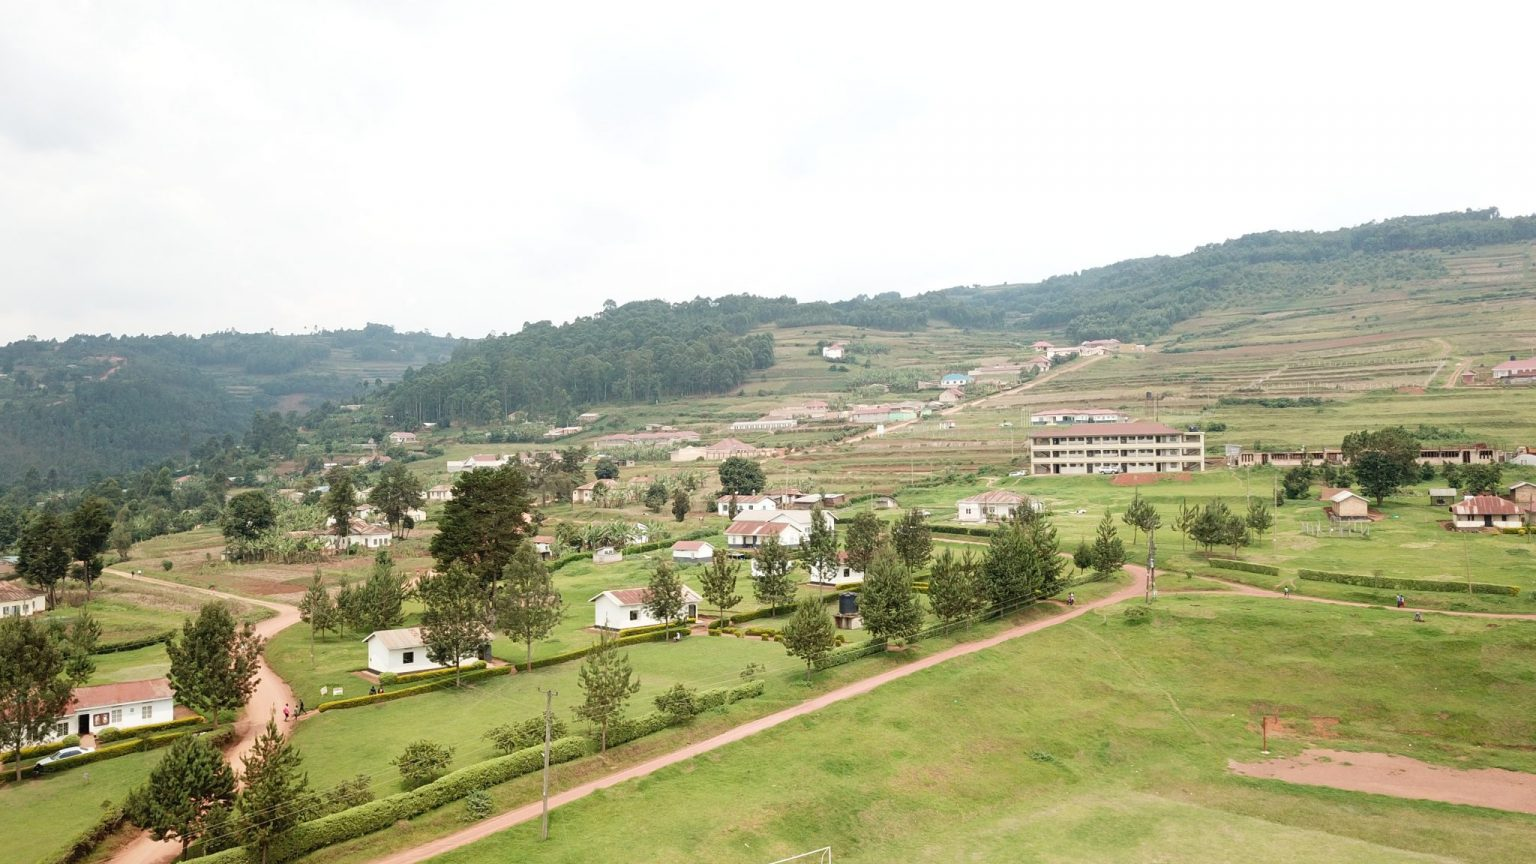 Kabale University currently has 60 academic programmes, 3253 students and 220 academic staff members which is about 20% of the approved staff establishment. Of the 56 academic programmes and majority of the programmes are in STEM.